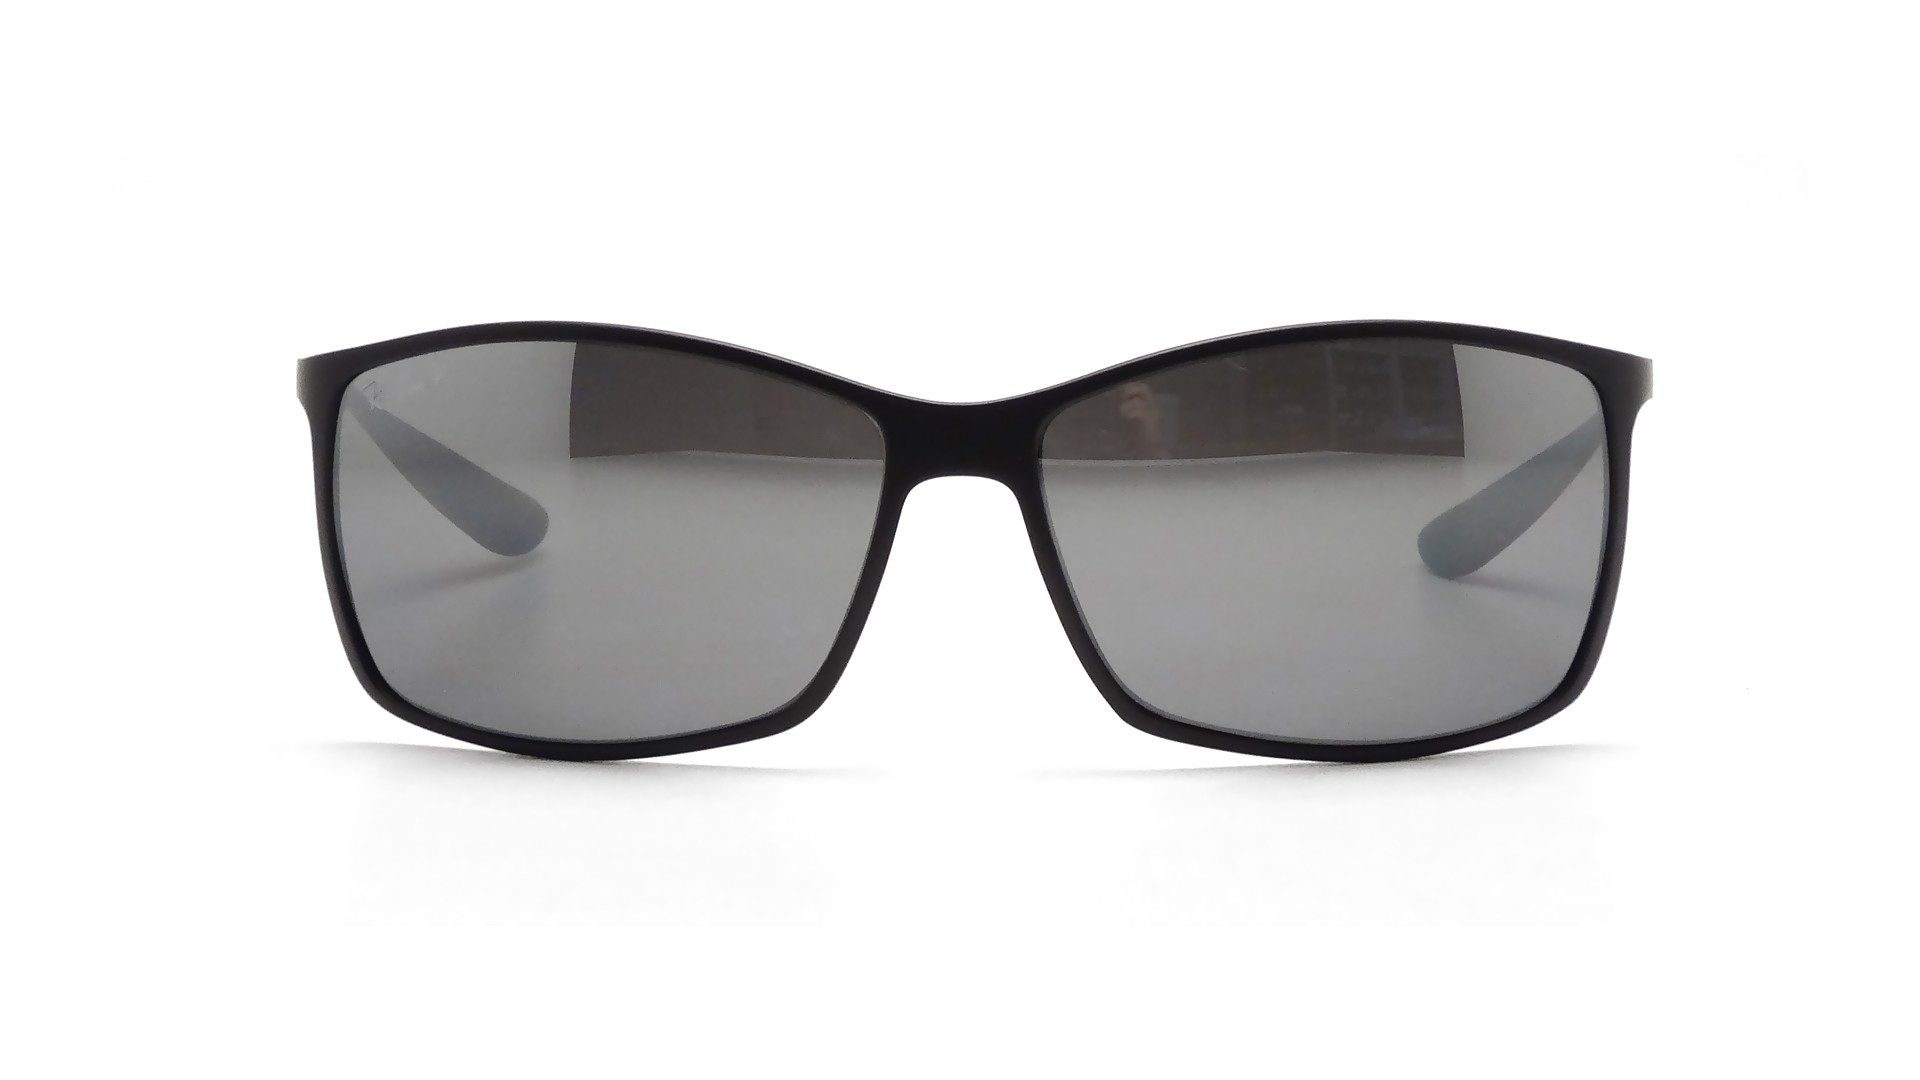 e23fed80a2 Sunglasses Ray-Ban Tech Liteforce Black Matte RB4179 601S 82 62-15 Large  Polarized Mirror